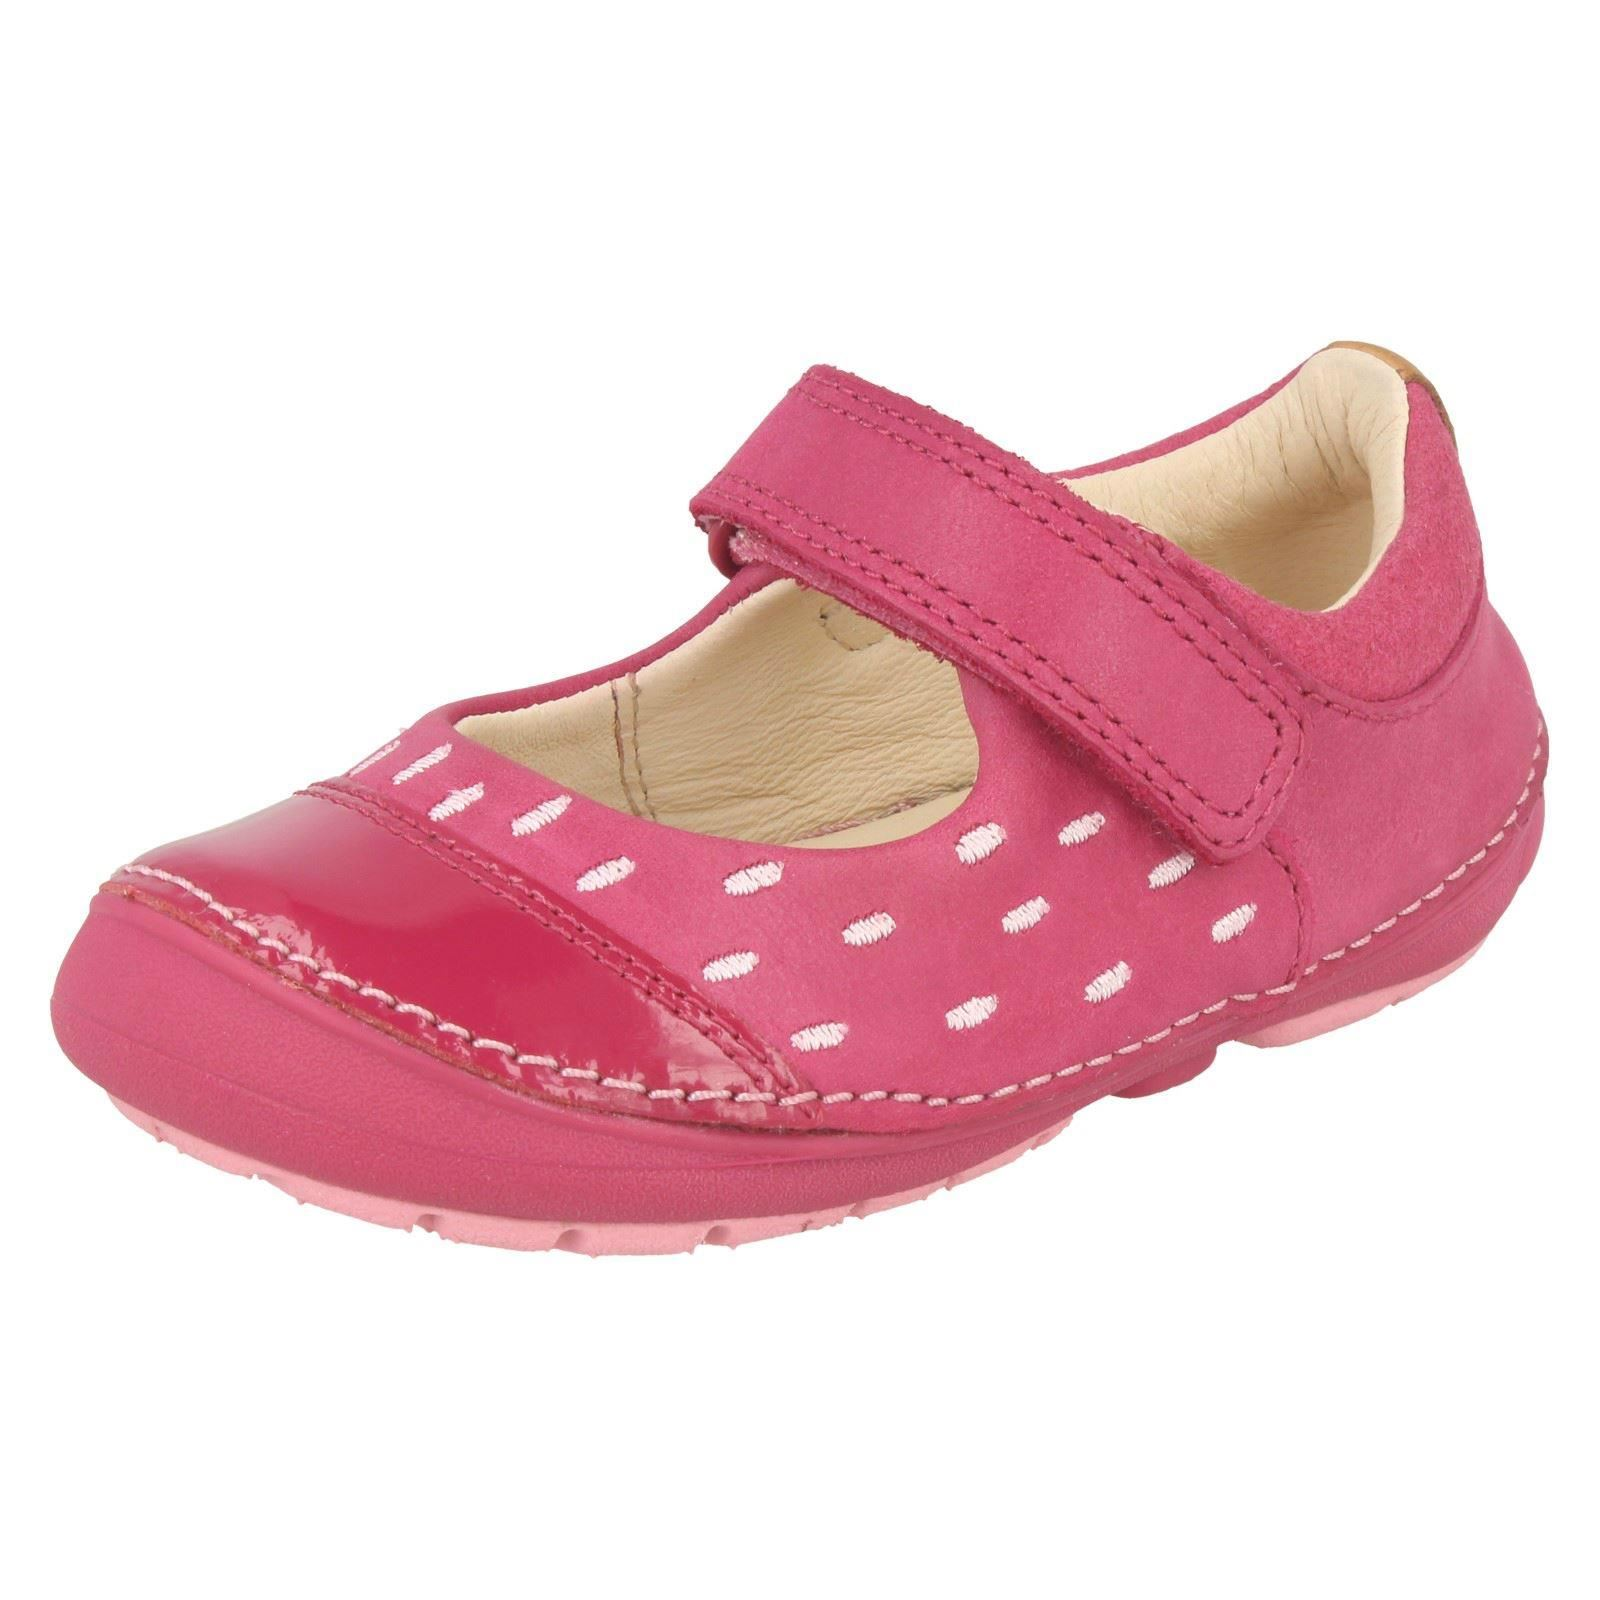 5e8f6cd2890fdb Girls Clarks Softly Lou First Walking Shoes Pink Leather Size 4 1 2 ...